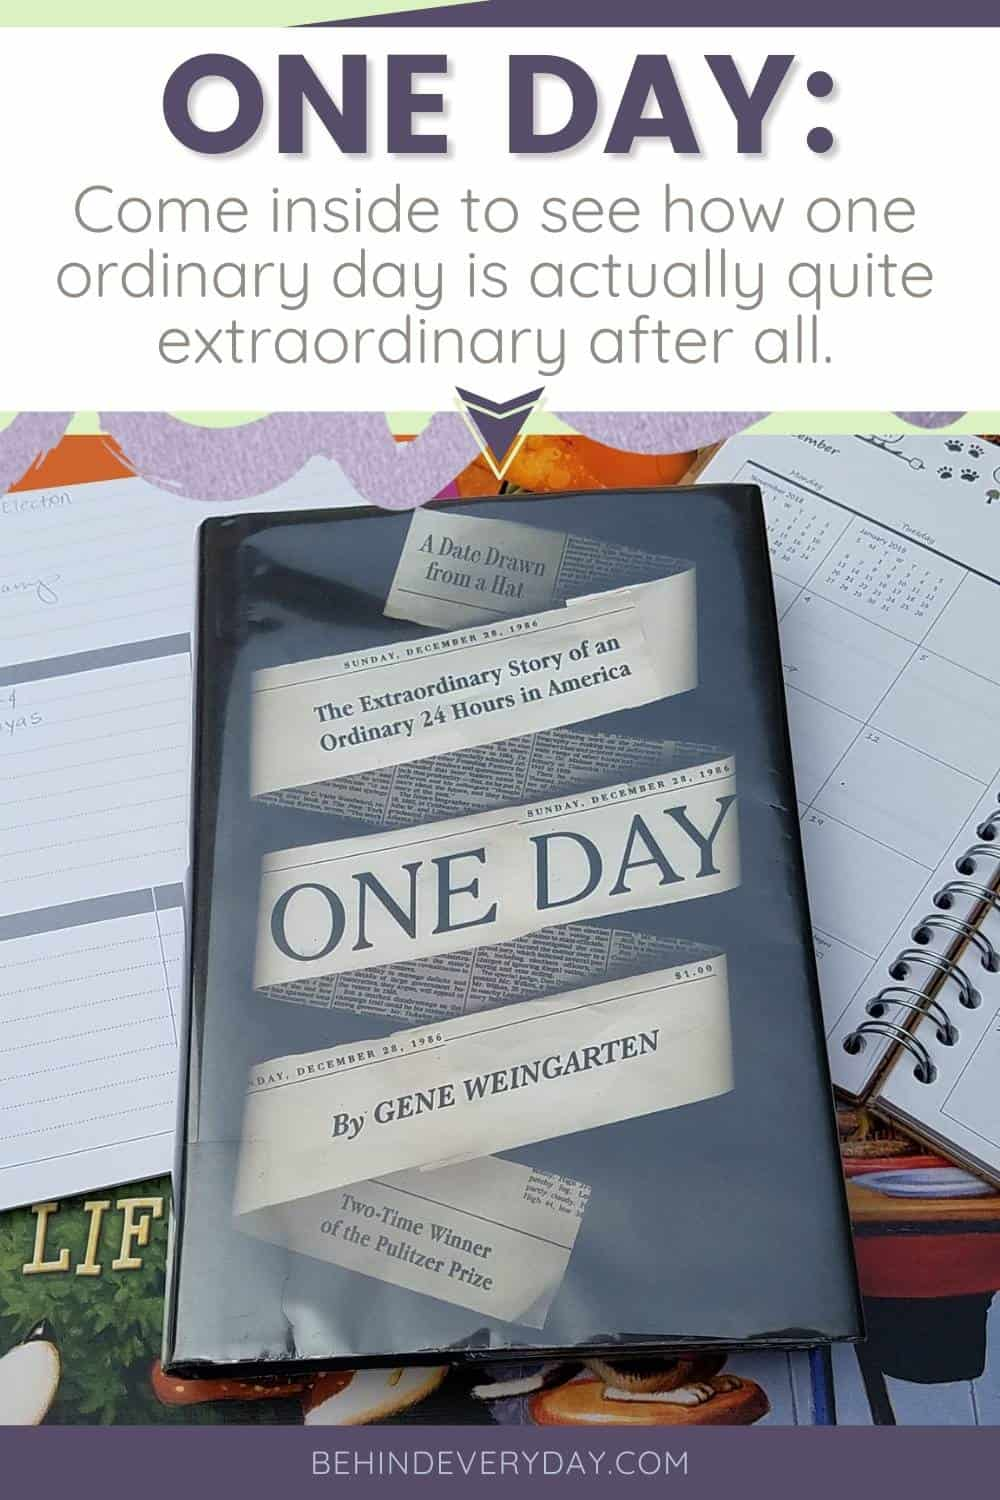 """Text reads """"One Day: Come inside to see how one ordinary day is actually quite extraordinary overall"""" below the text is a book titled One Day with calendars and planners in the background."""